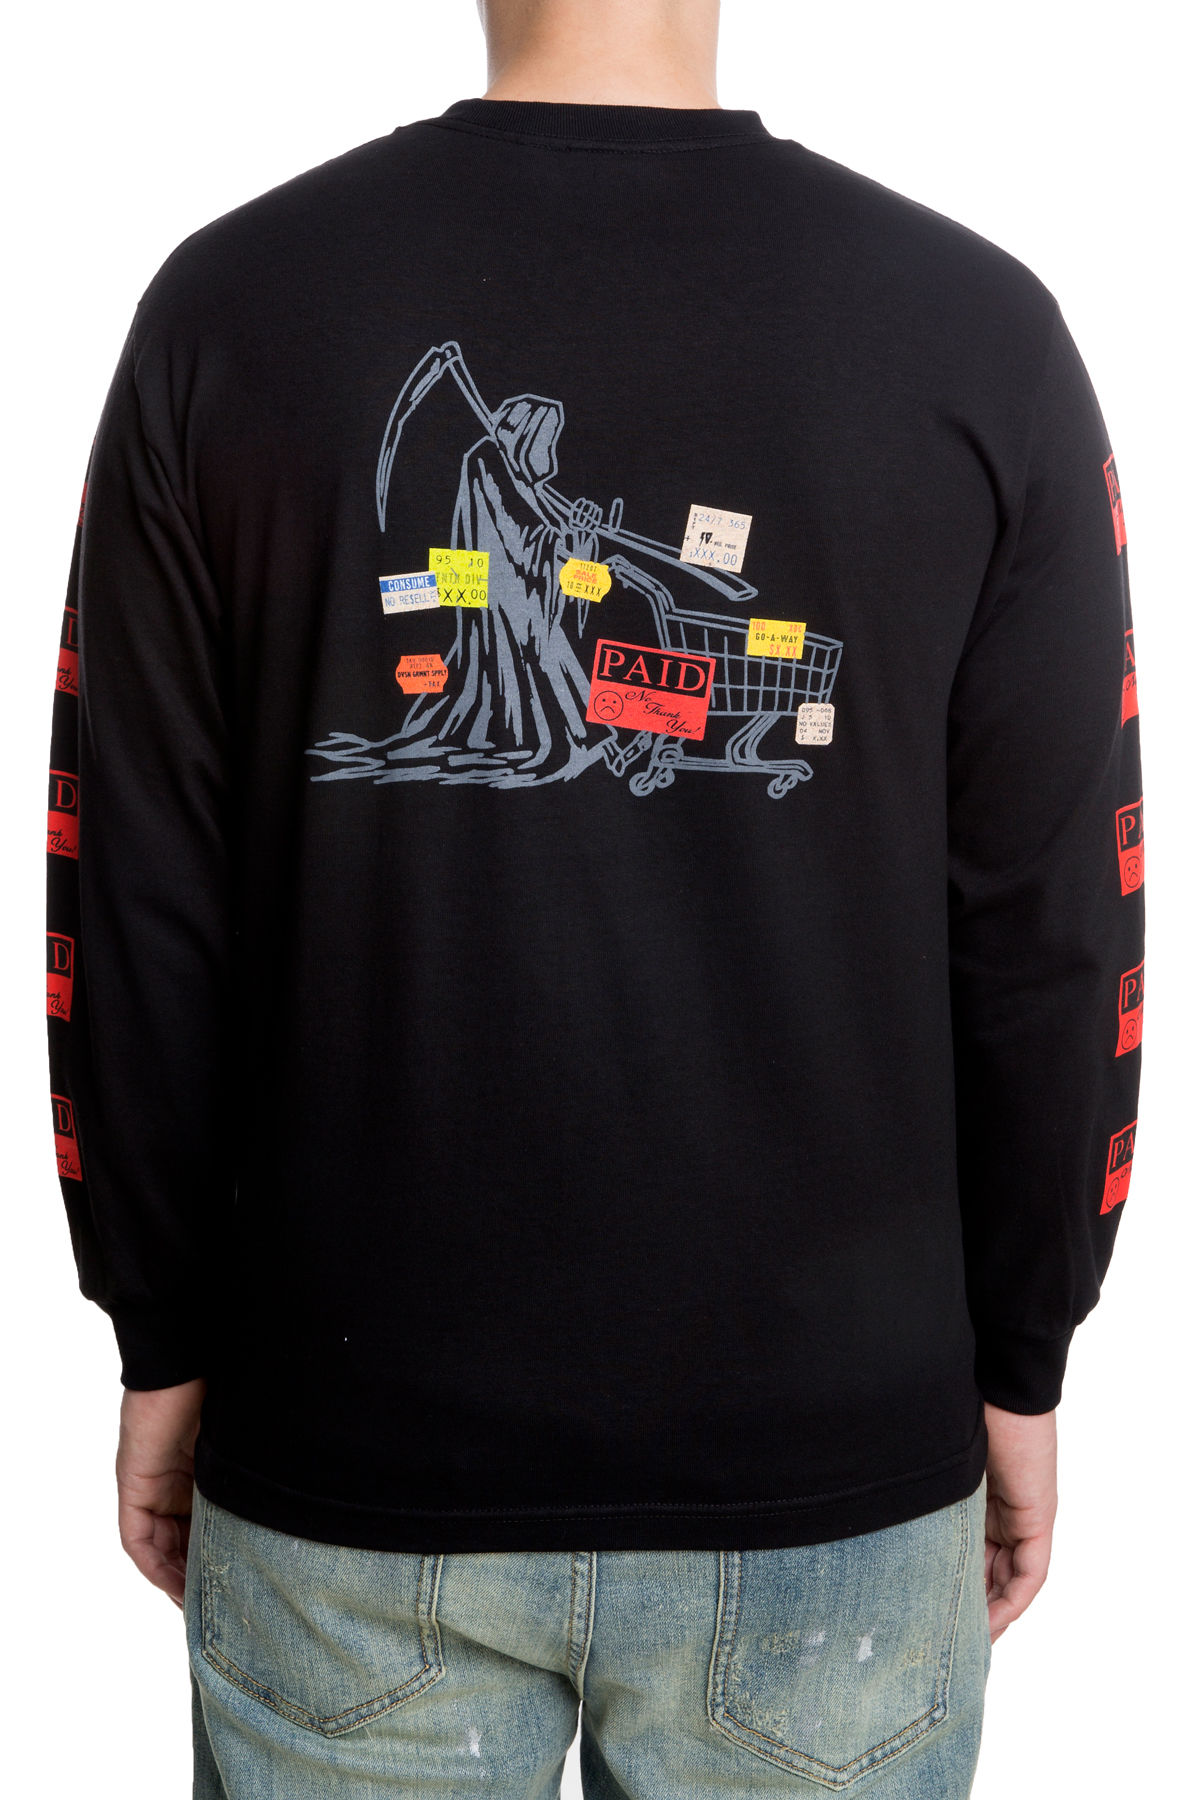 The Paid in Full L/S in Black